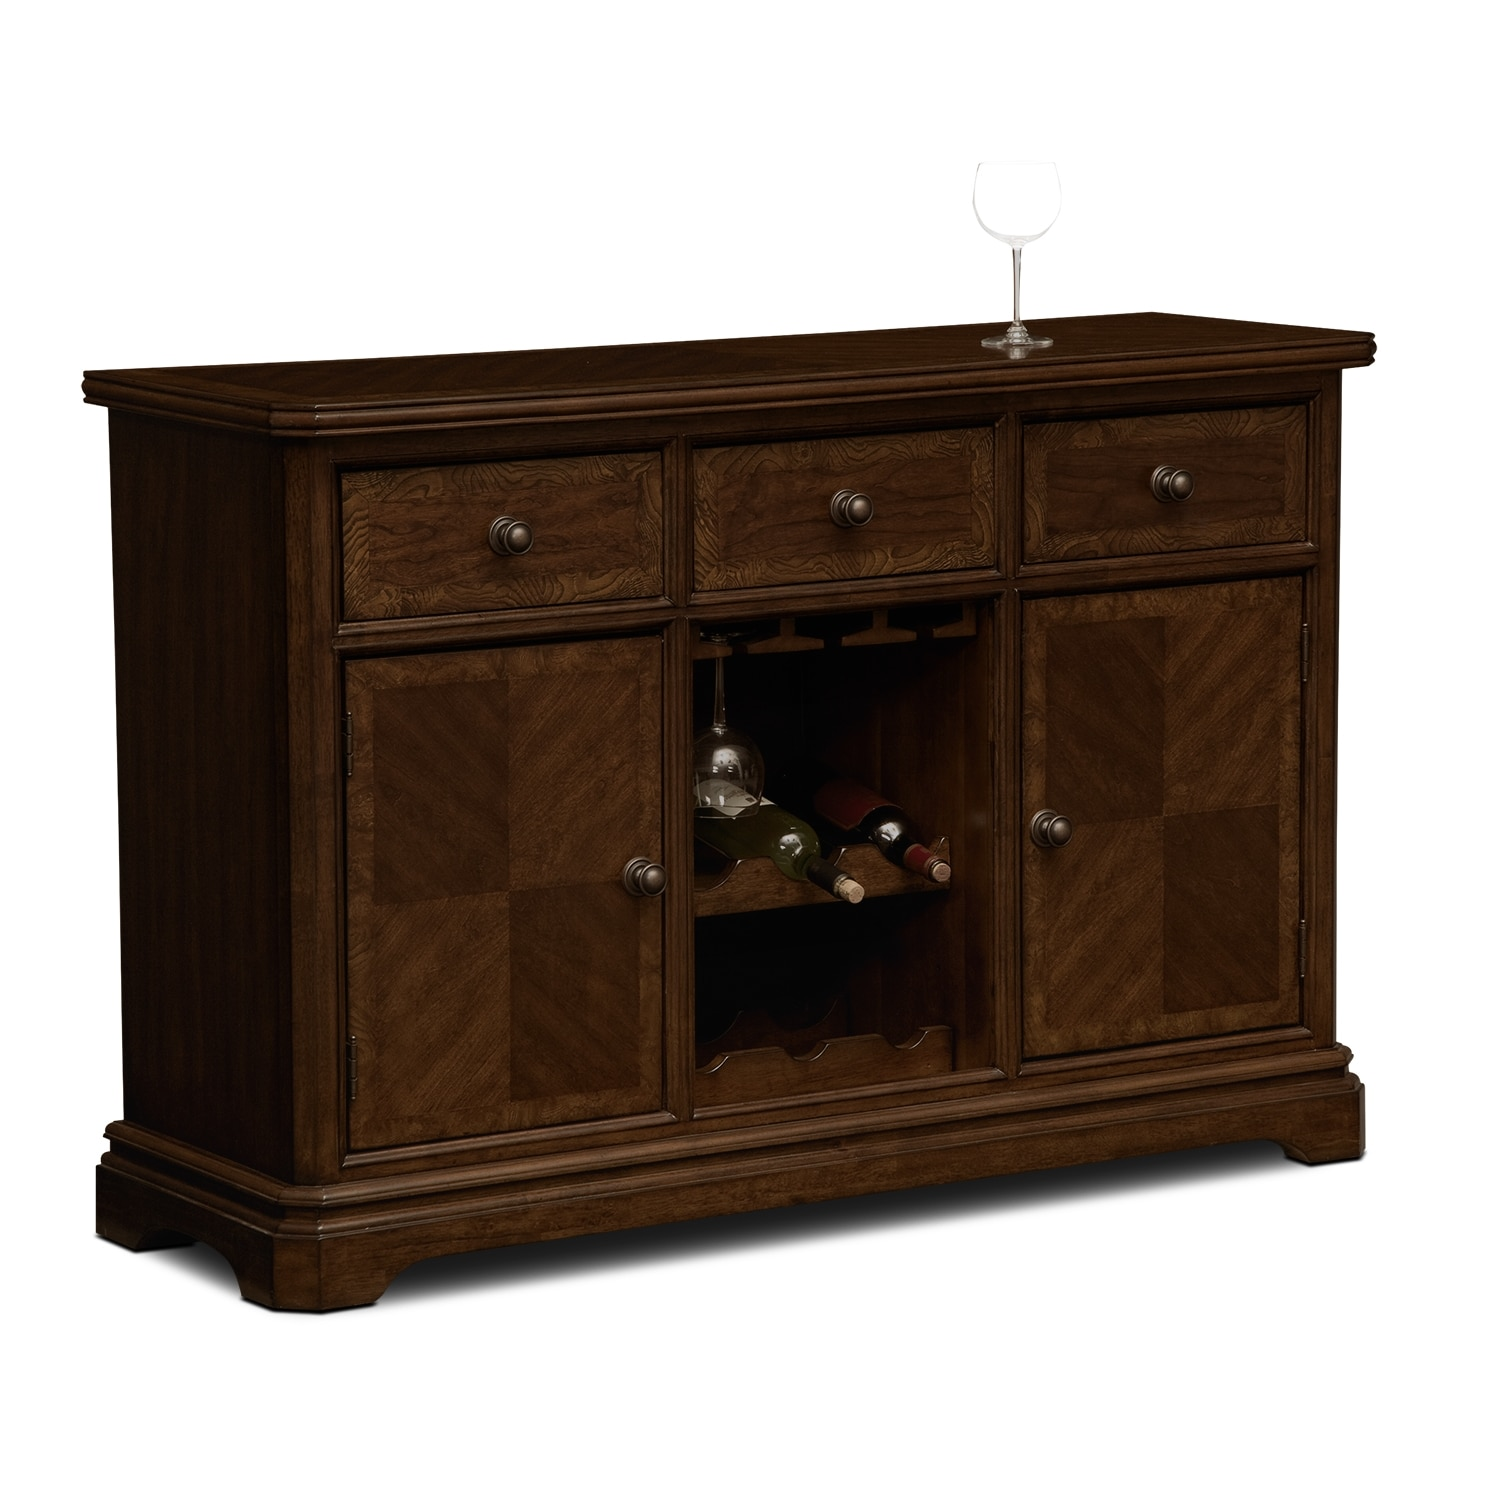 Westin dining room sideboard value city furniture for Dining room buffet